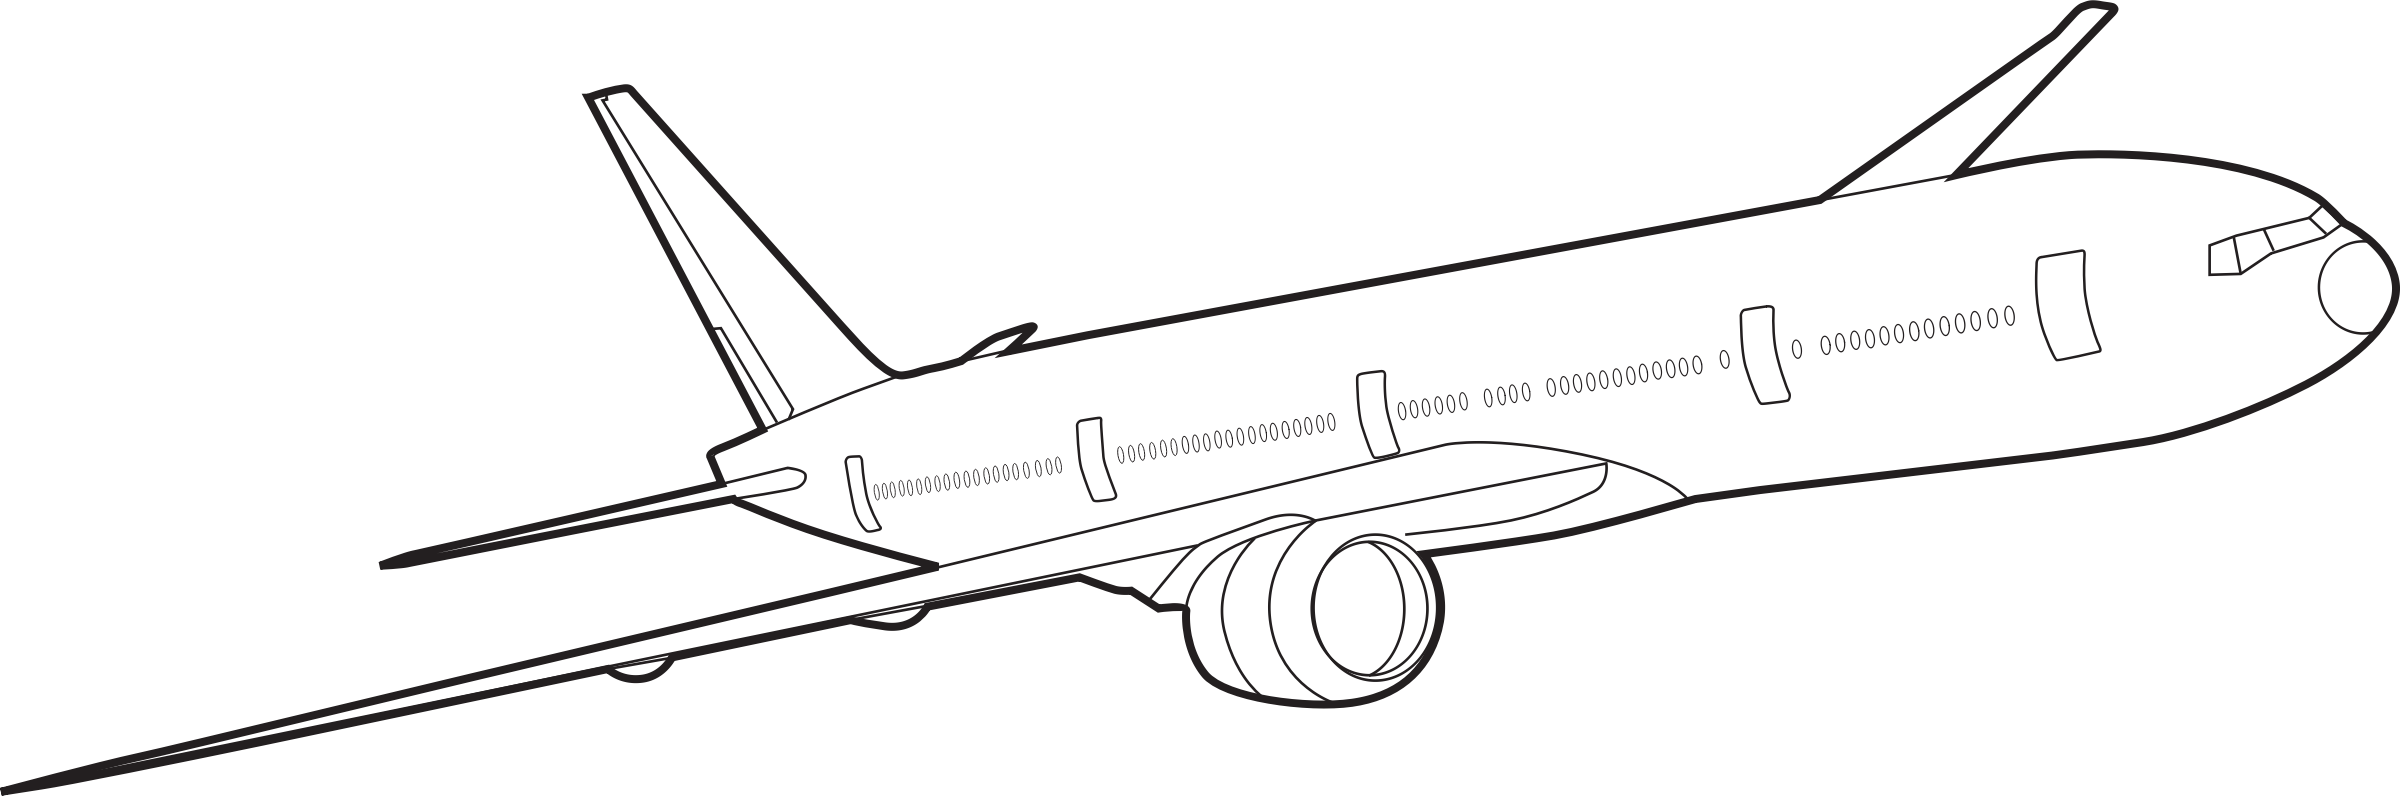 Plane outline drawing at. Pilot clipart sketch